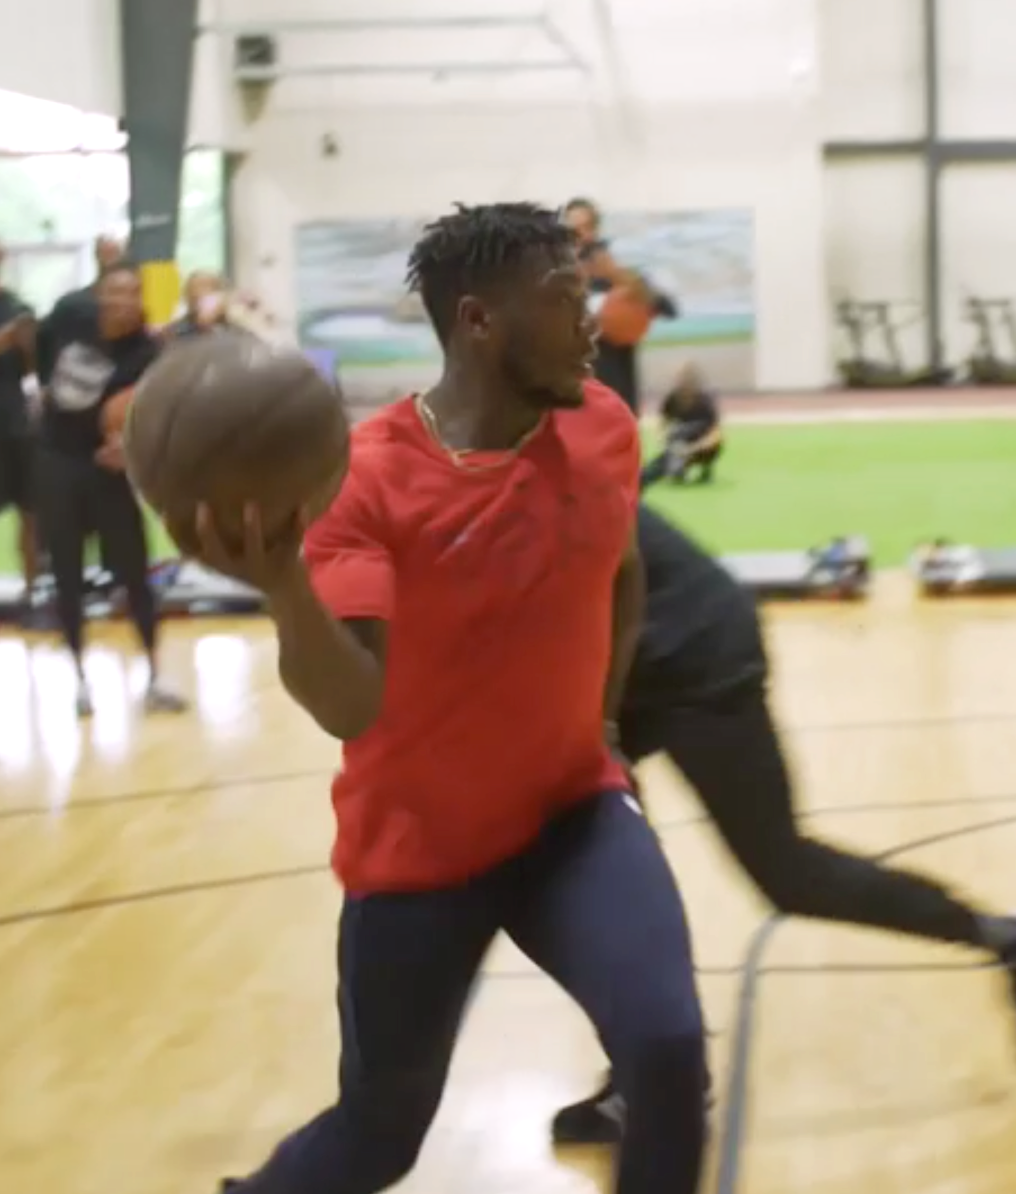 VIDEO: Ochocinco needs to protect his ankles on the court versus Nate Robinson